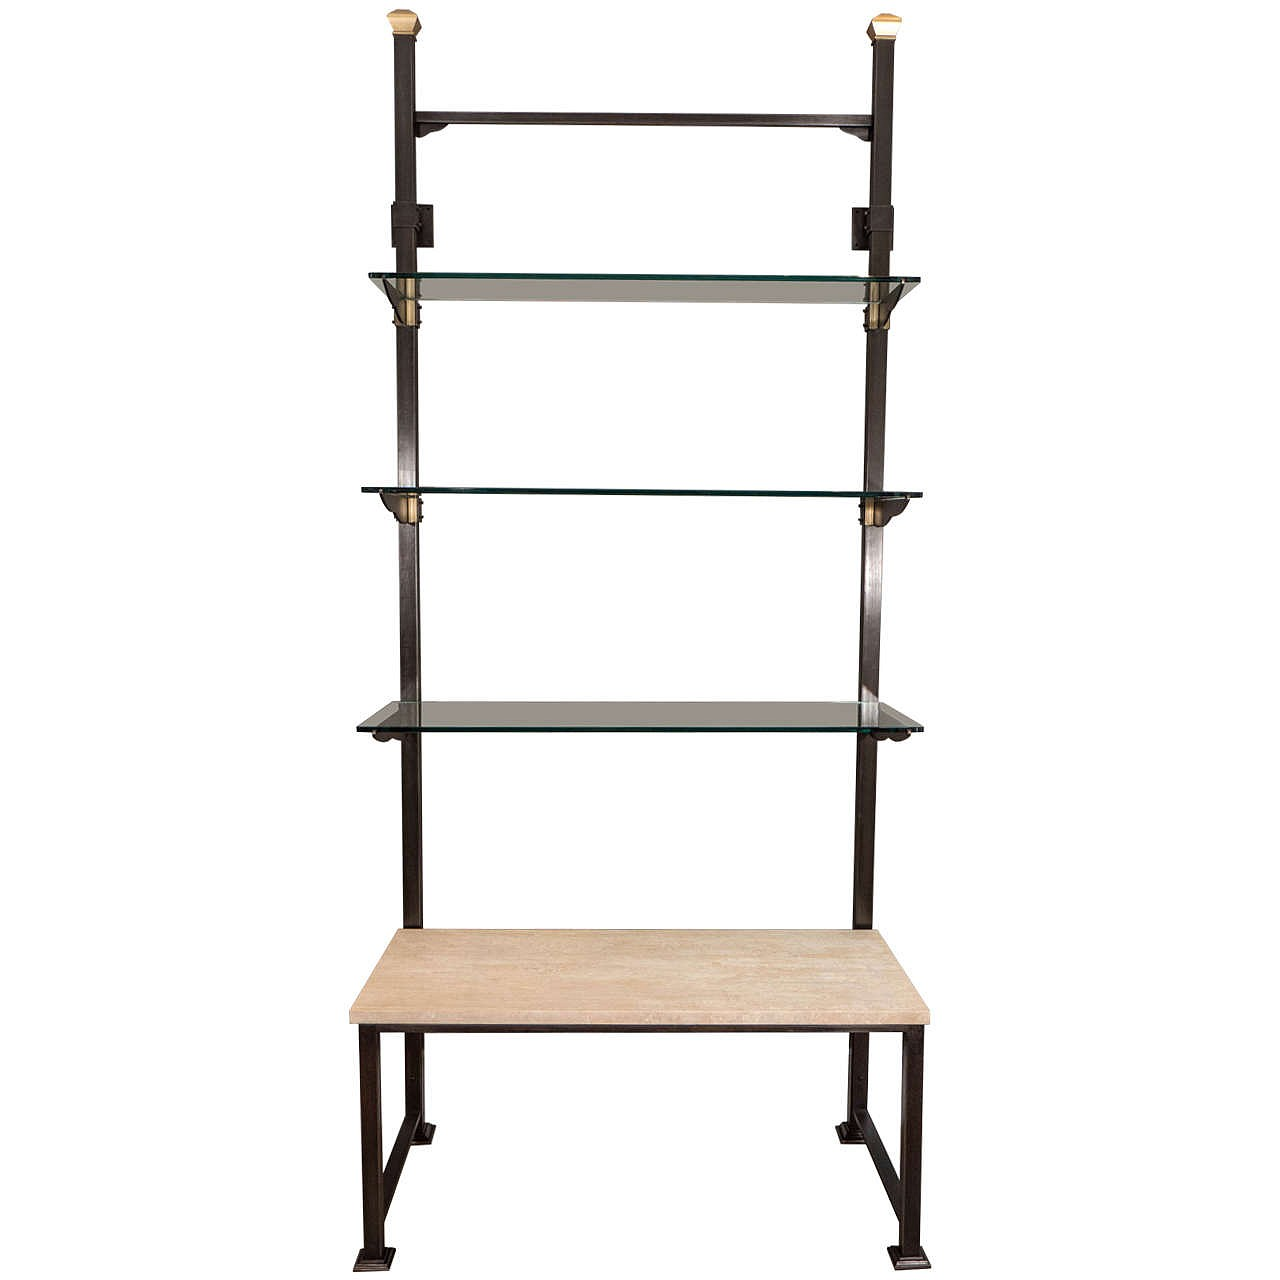 Viennese Secessionist Wall Mounted Shelving System